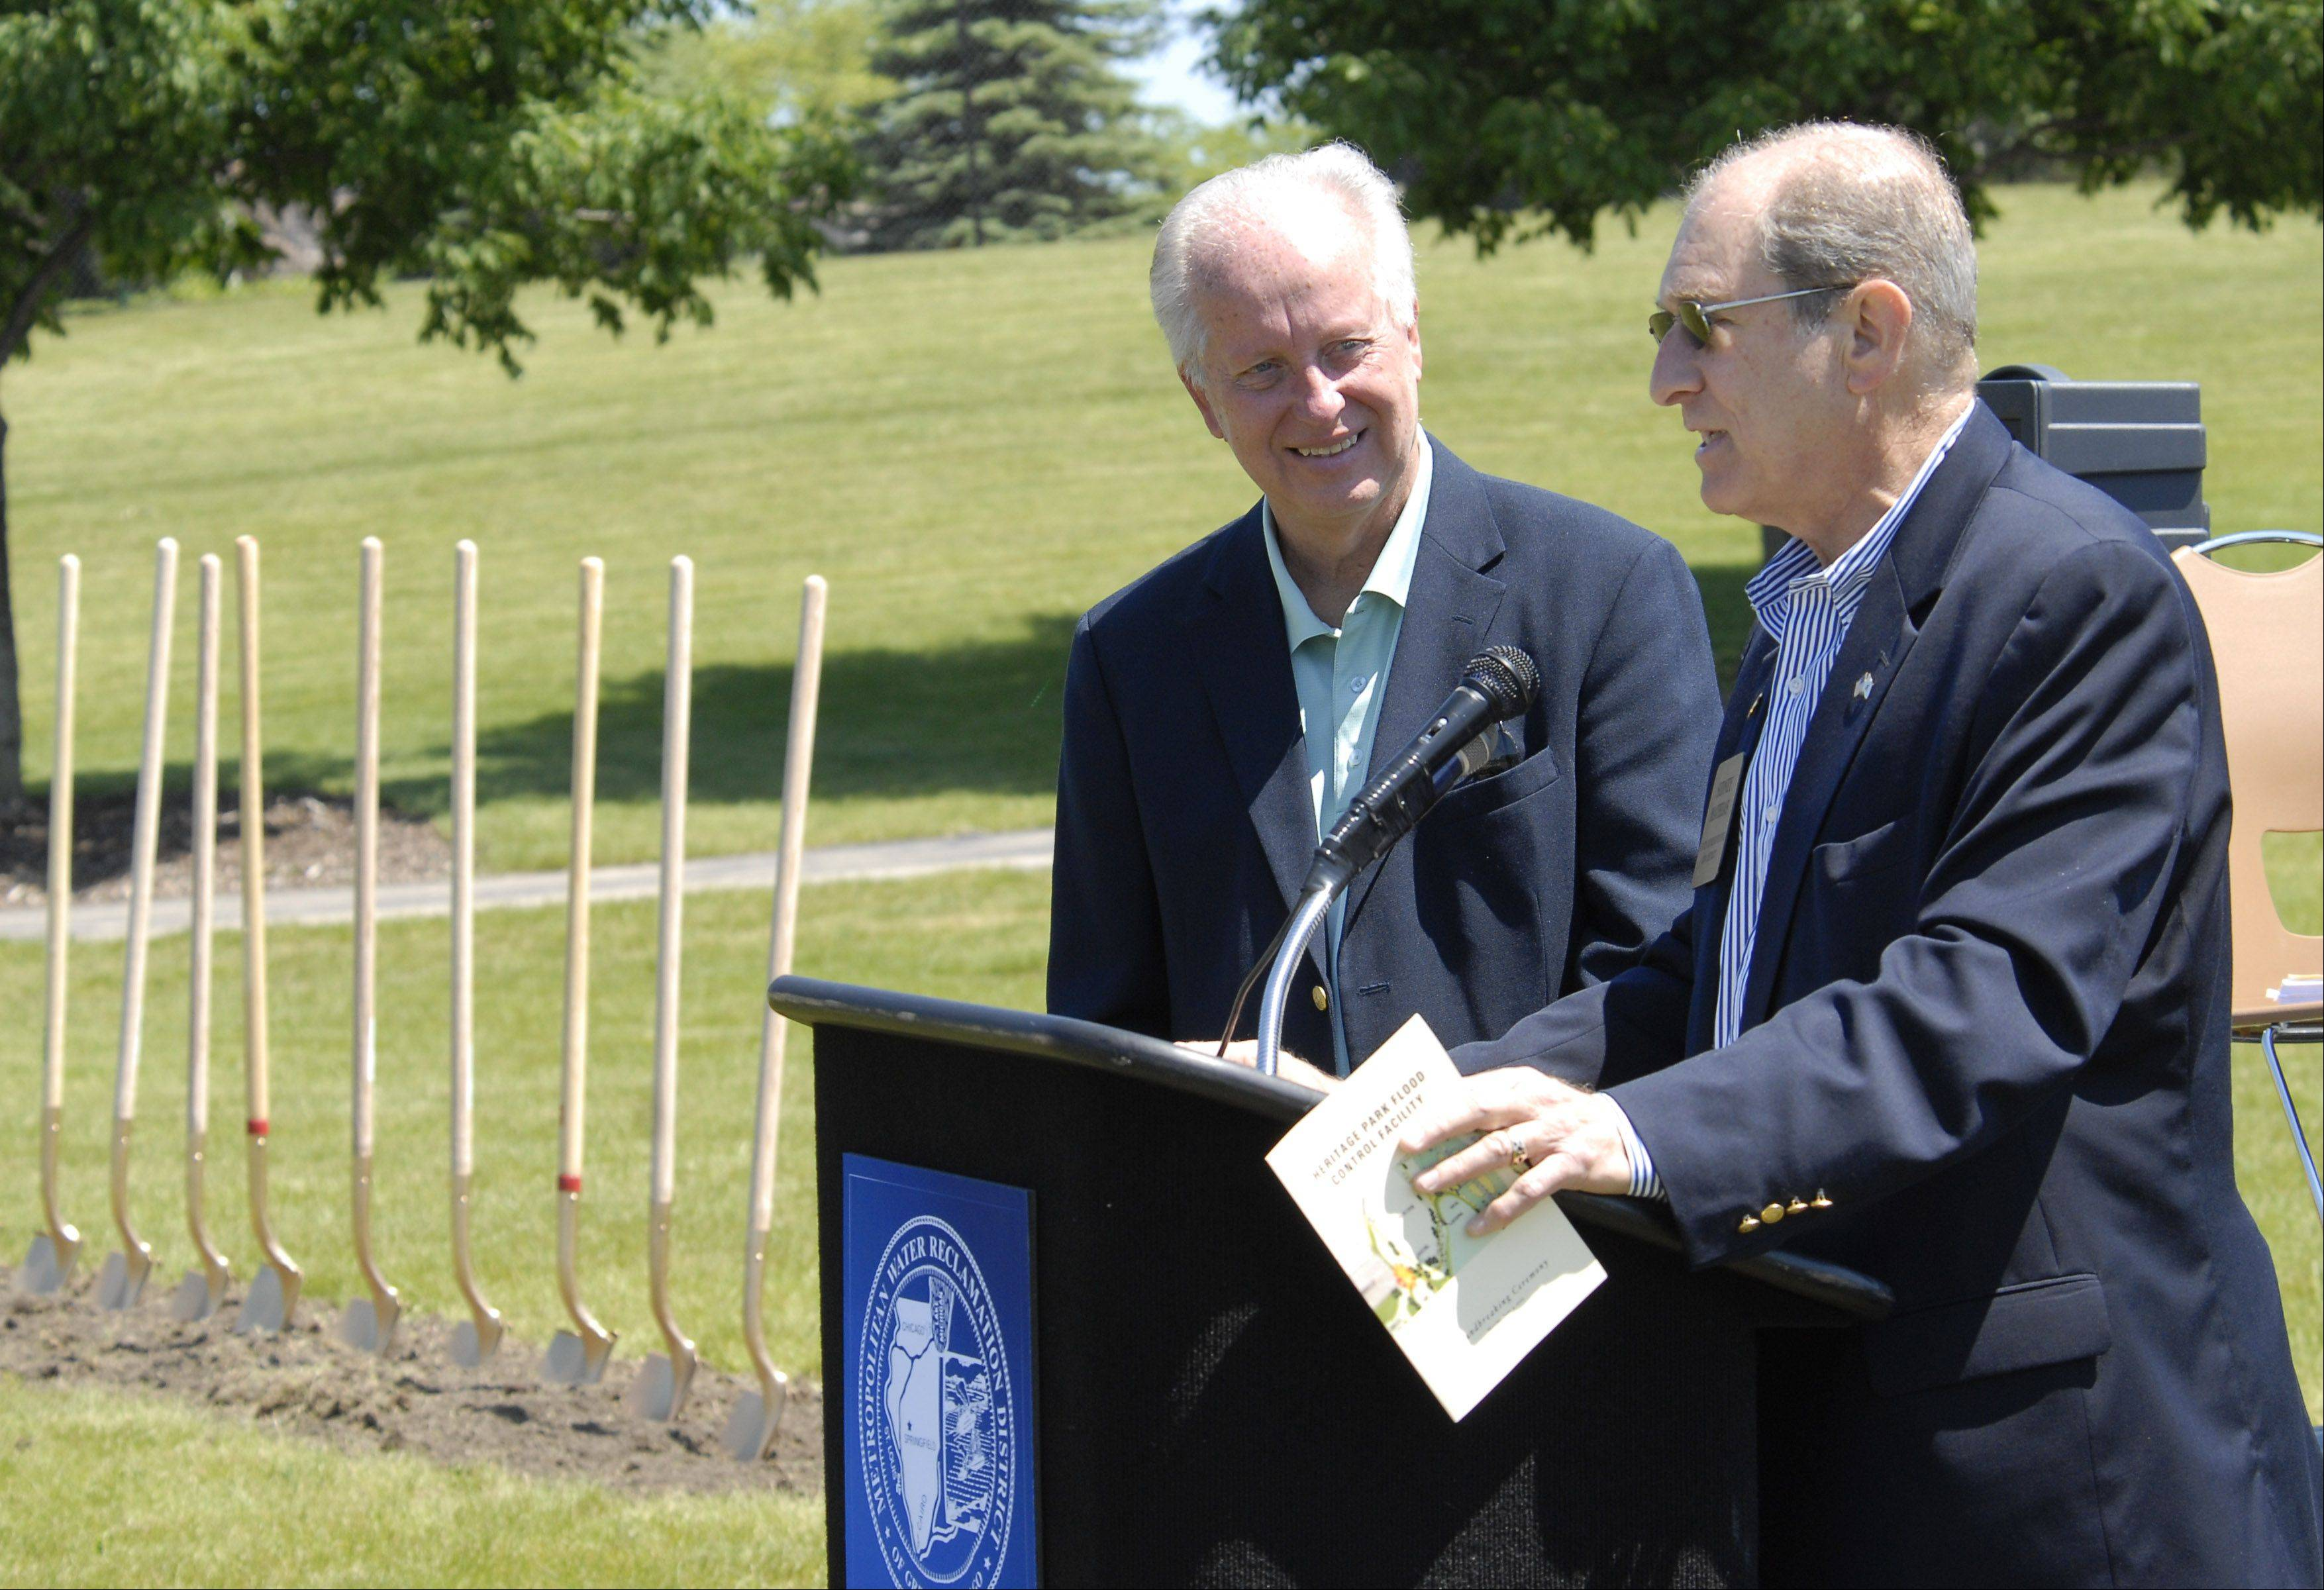 State Rep. Sid Mathias speaks as state Sen. Terry Link looks on, at Monday's groundbreaking.